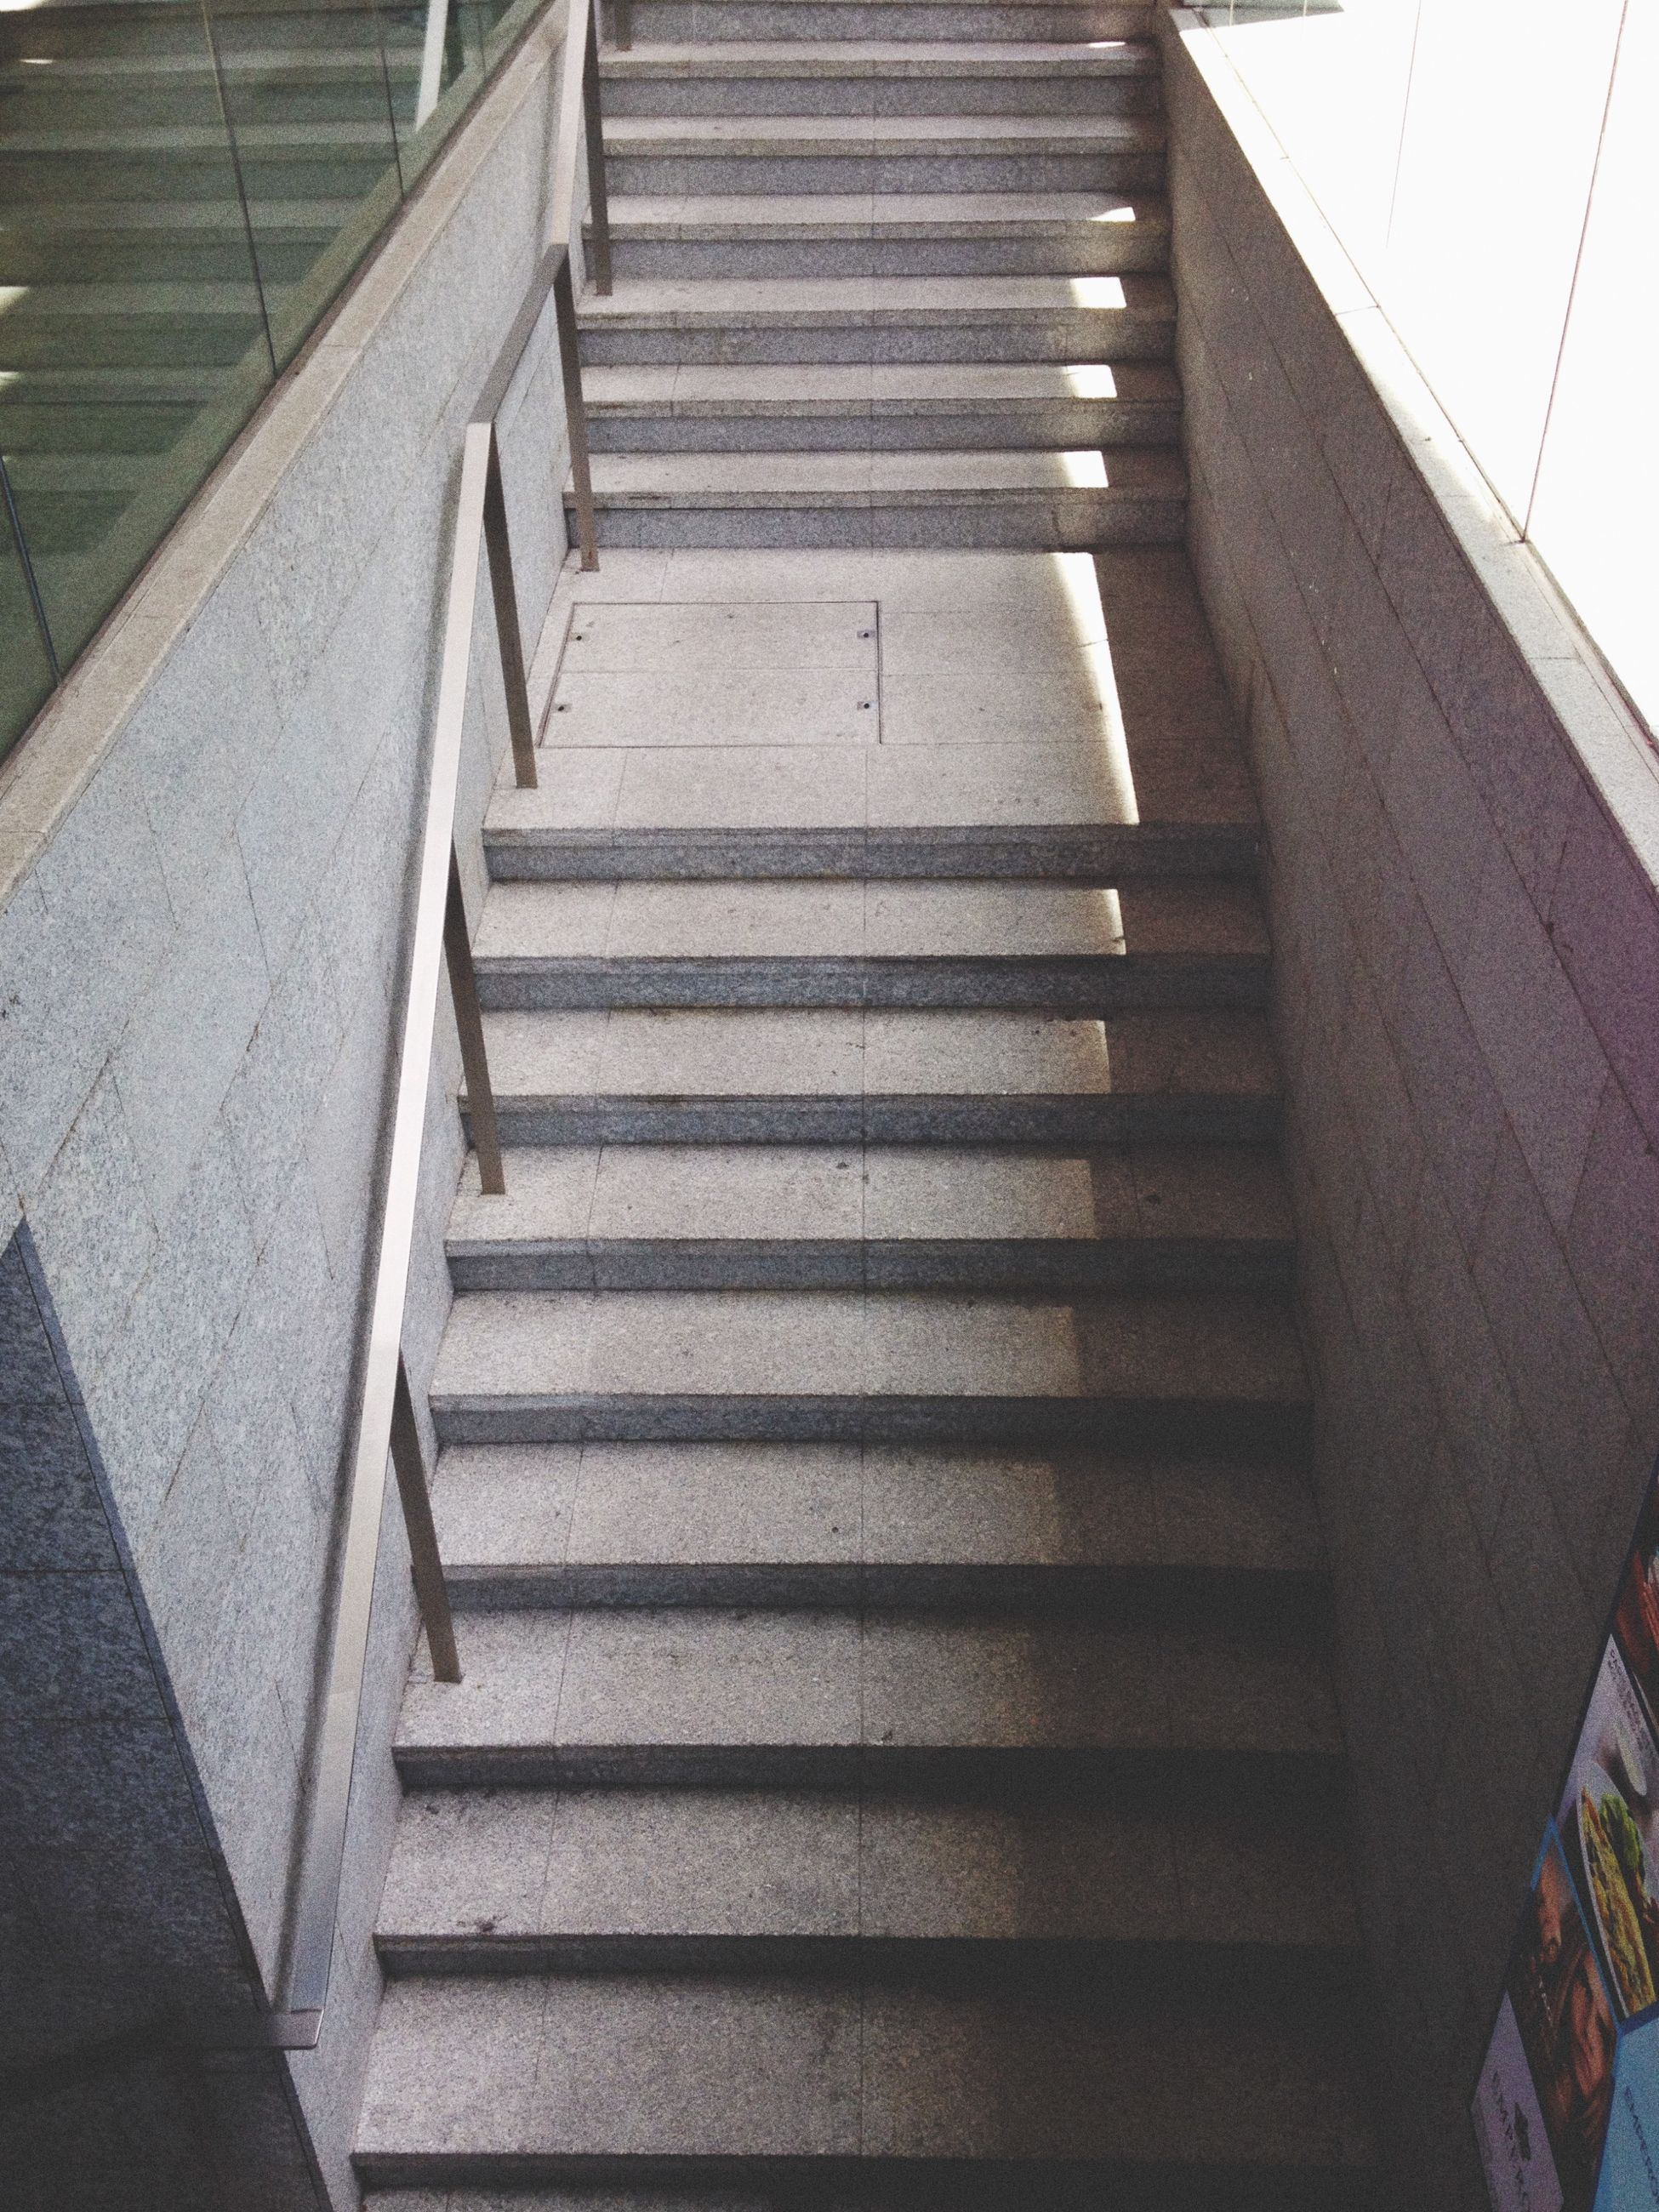 steps, staircase, steps and staircases, railing, high angle view, indoors, architecture, built structure, stairs, the way forward, low angle view, building, building exterior, escalator, diminishing perspective, sunlight, wall - building feature, day, no people, steps and staircase